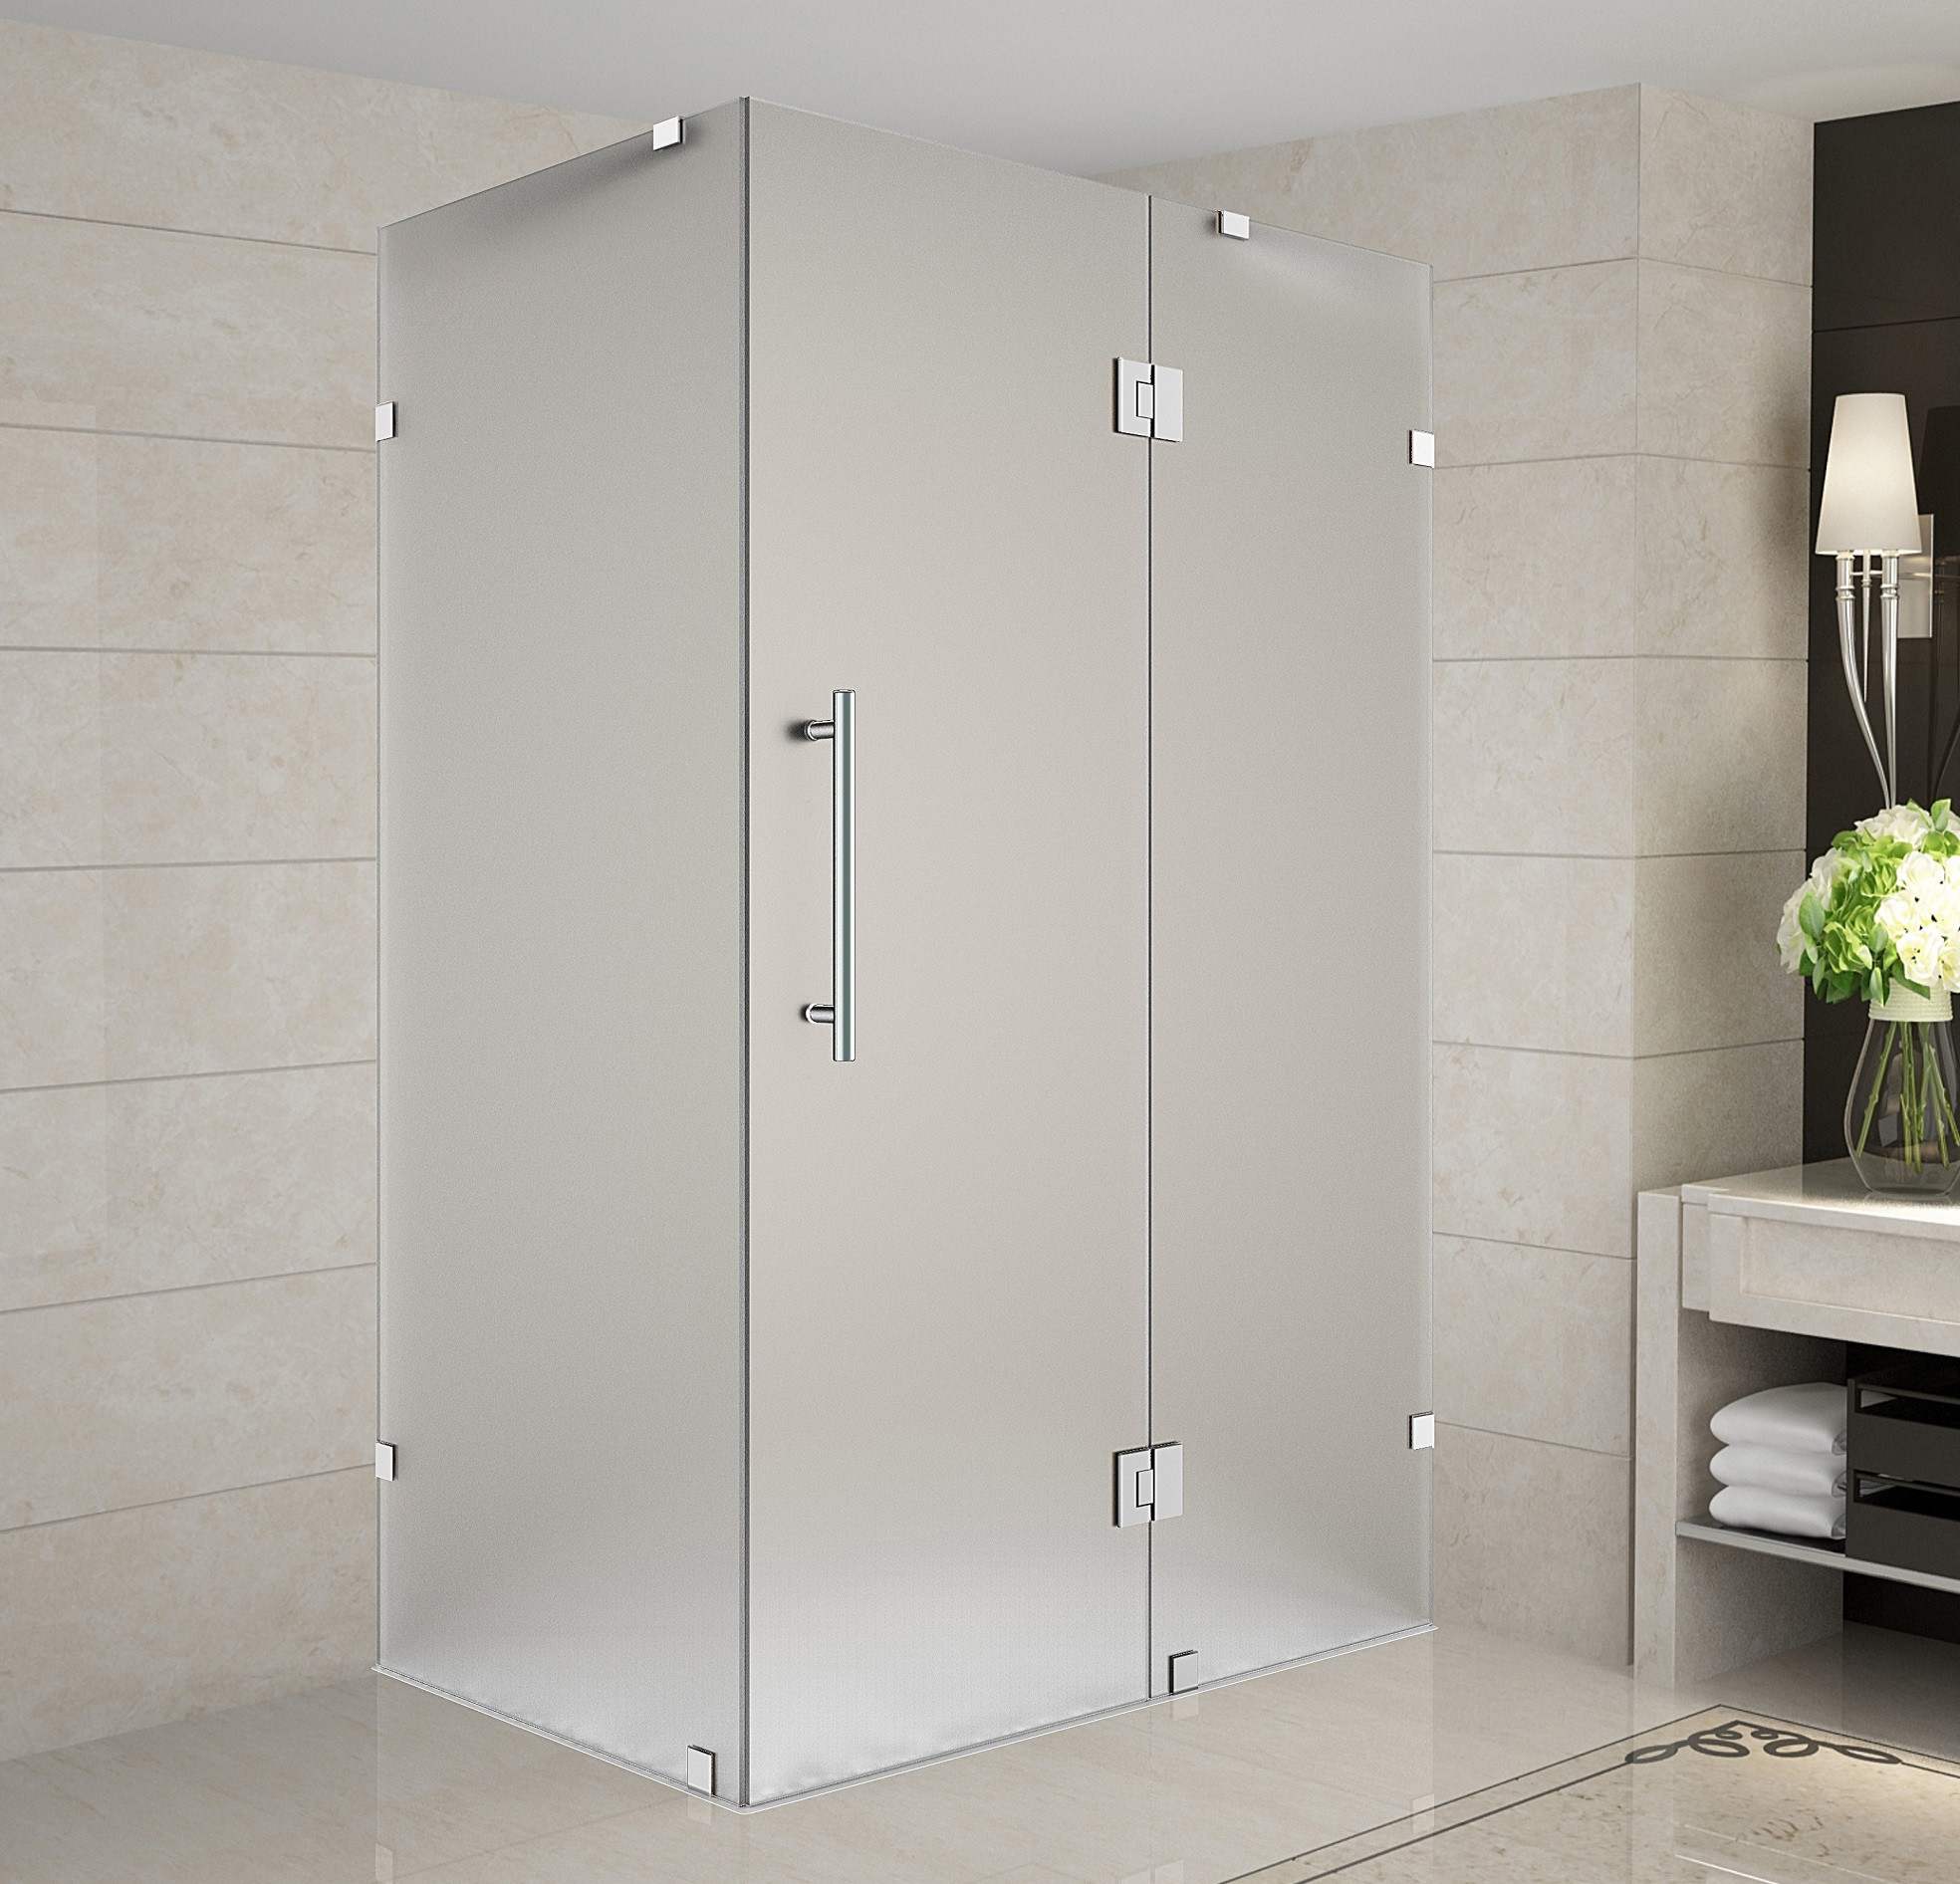 Aston Global SEN987F-SS-3436-10 Frameless Frosted Glass Shower Enclosure In Stainless Steel